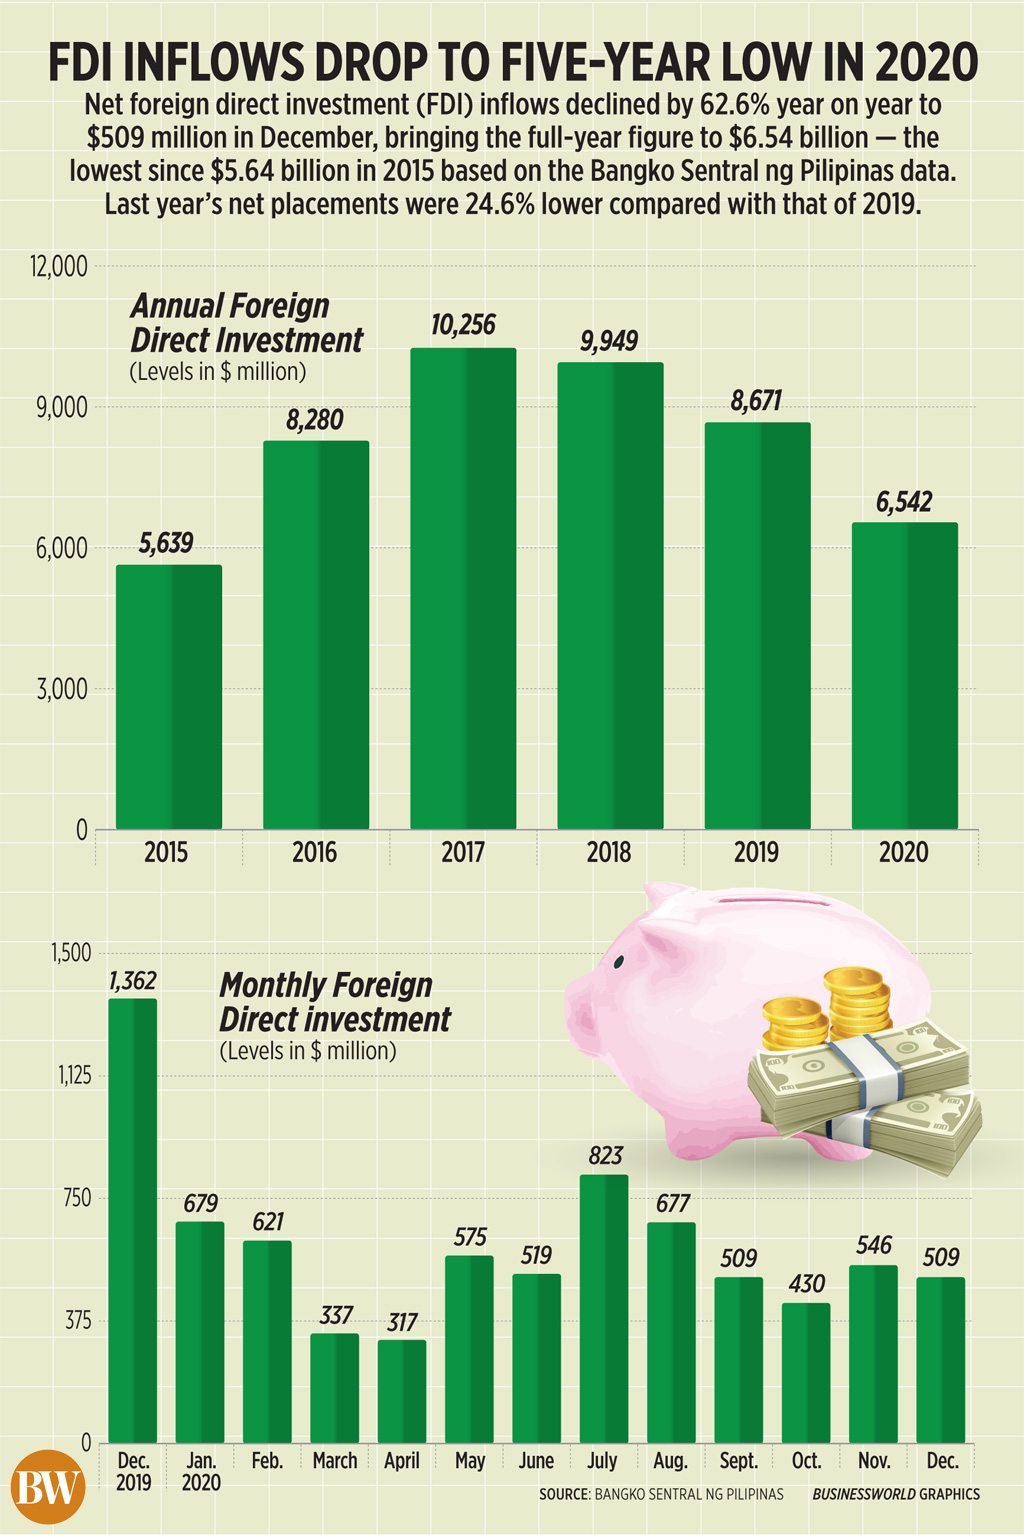 FDI inflows drop to five-year low in 2020